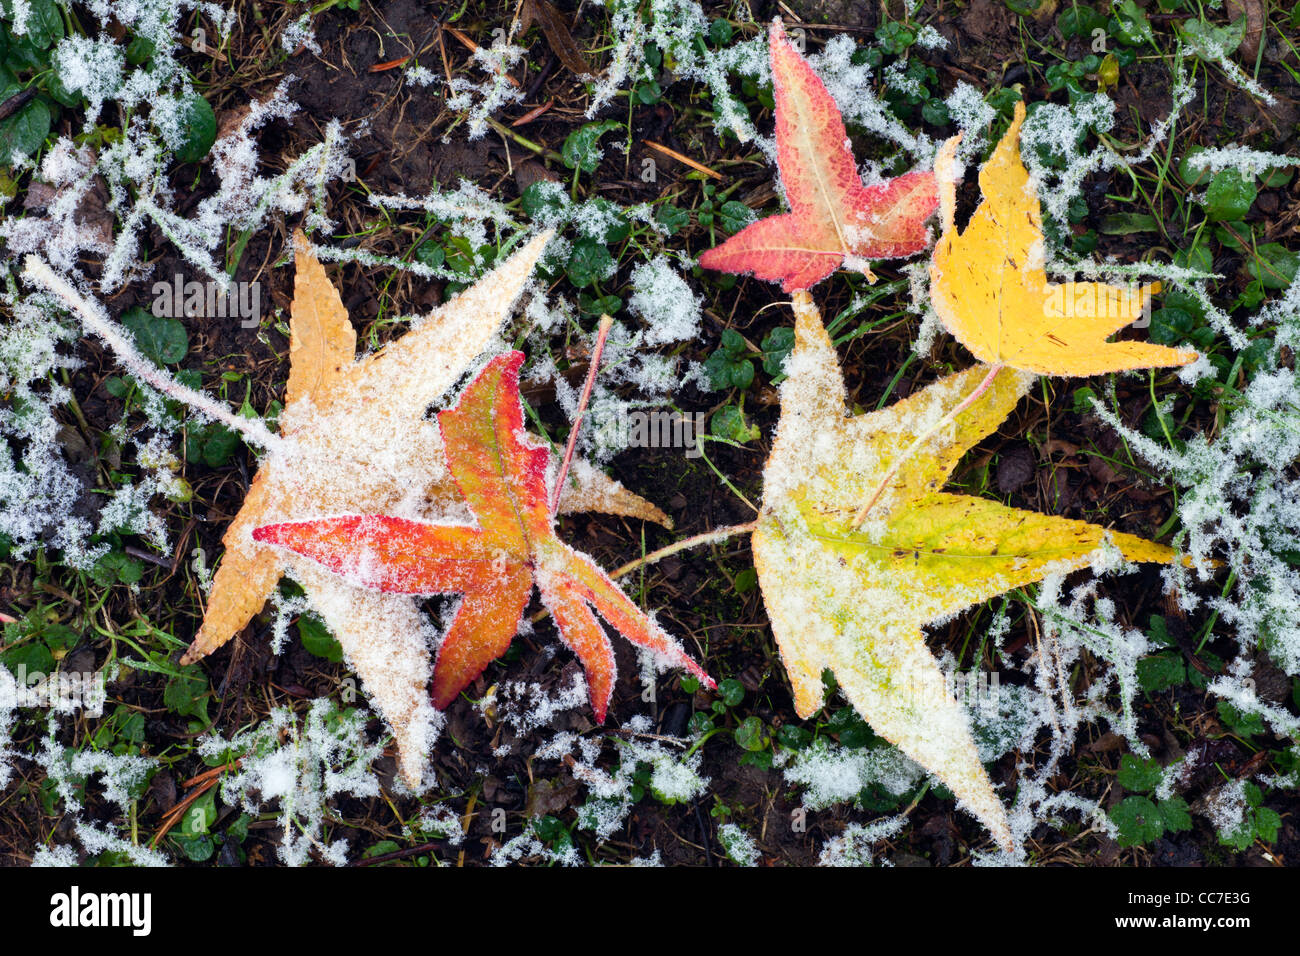 Sweet Gum Tree (Liquidambar styraciflua), Fallen Leaves on Ground in Autumn, Covered in Frost, Lower Saxony, Germany - Stock Image